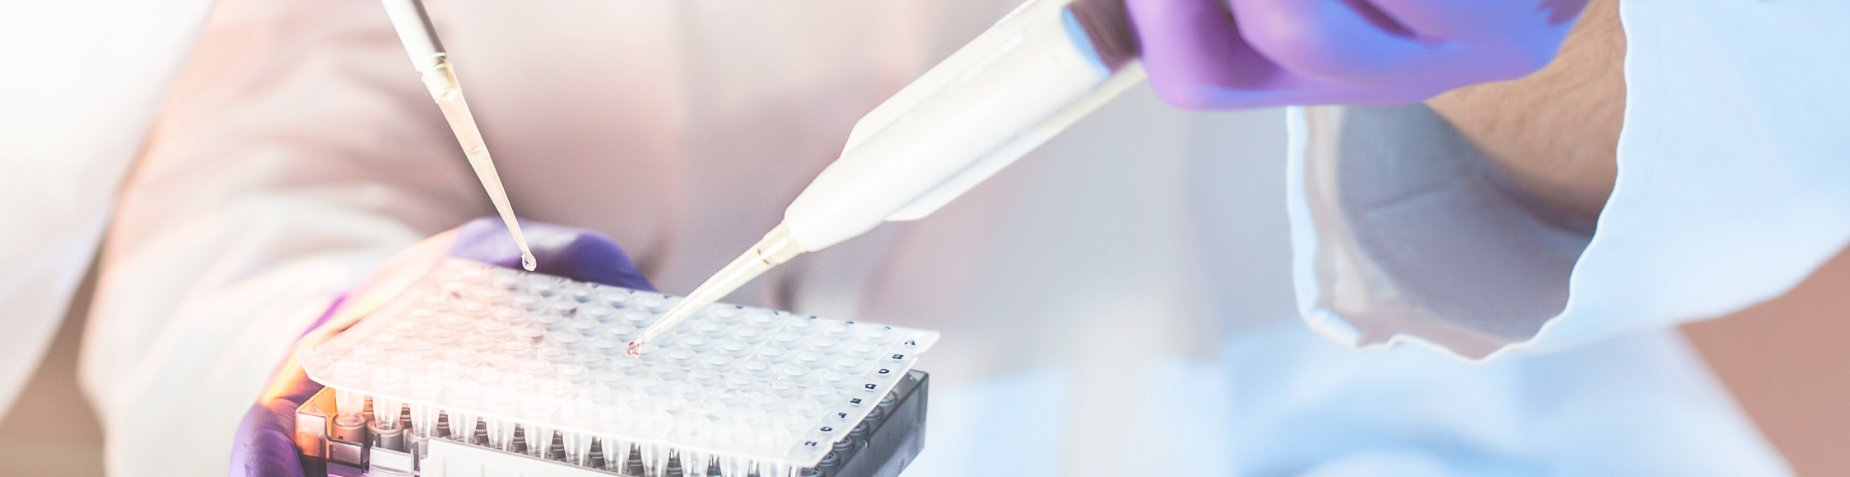 Save Up to 35% on all Pipettes